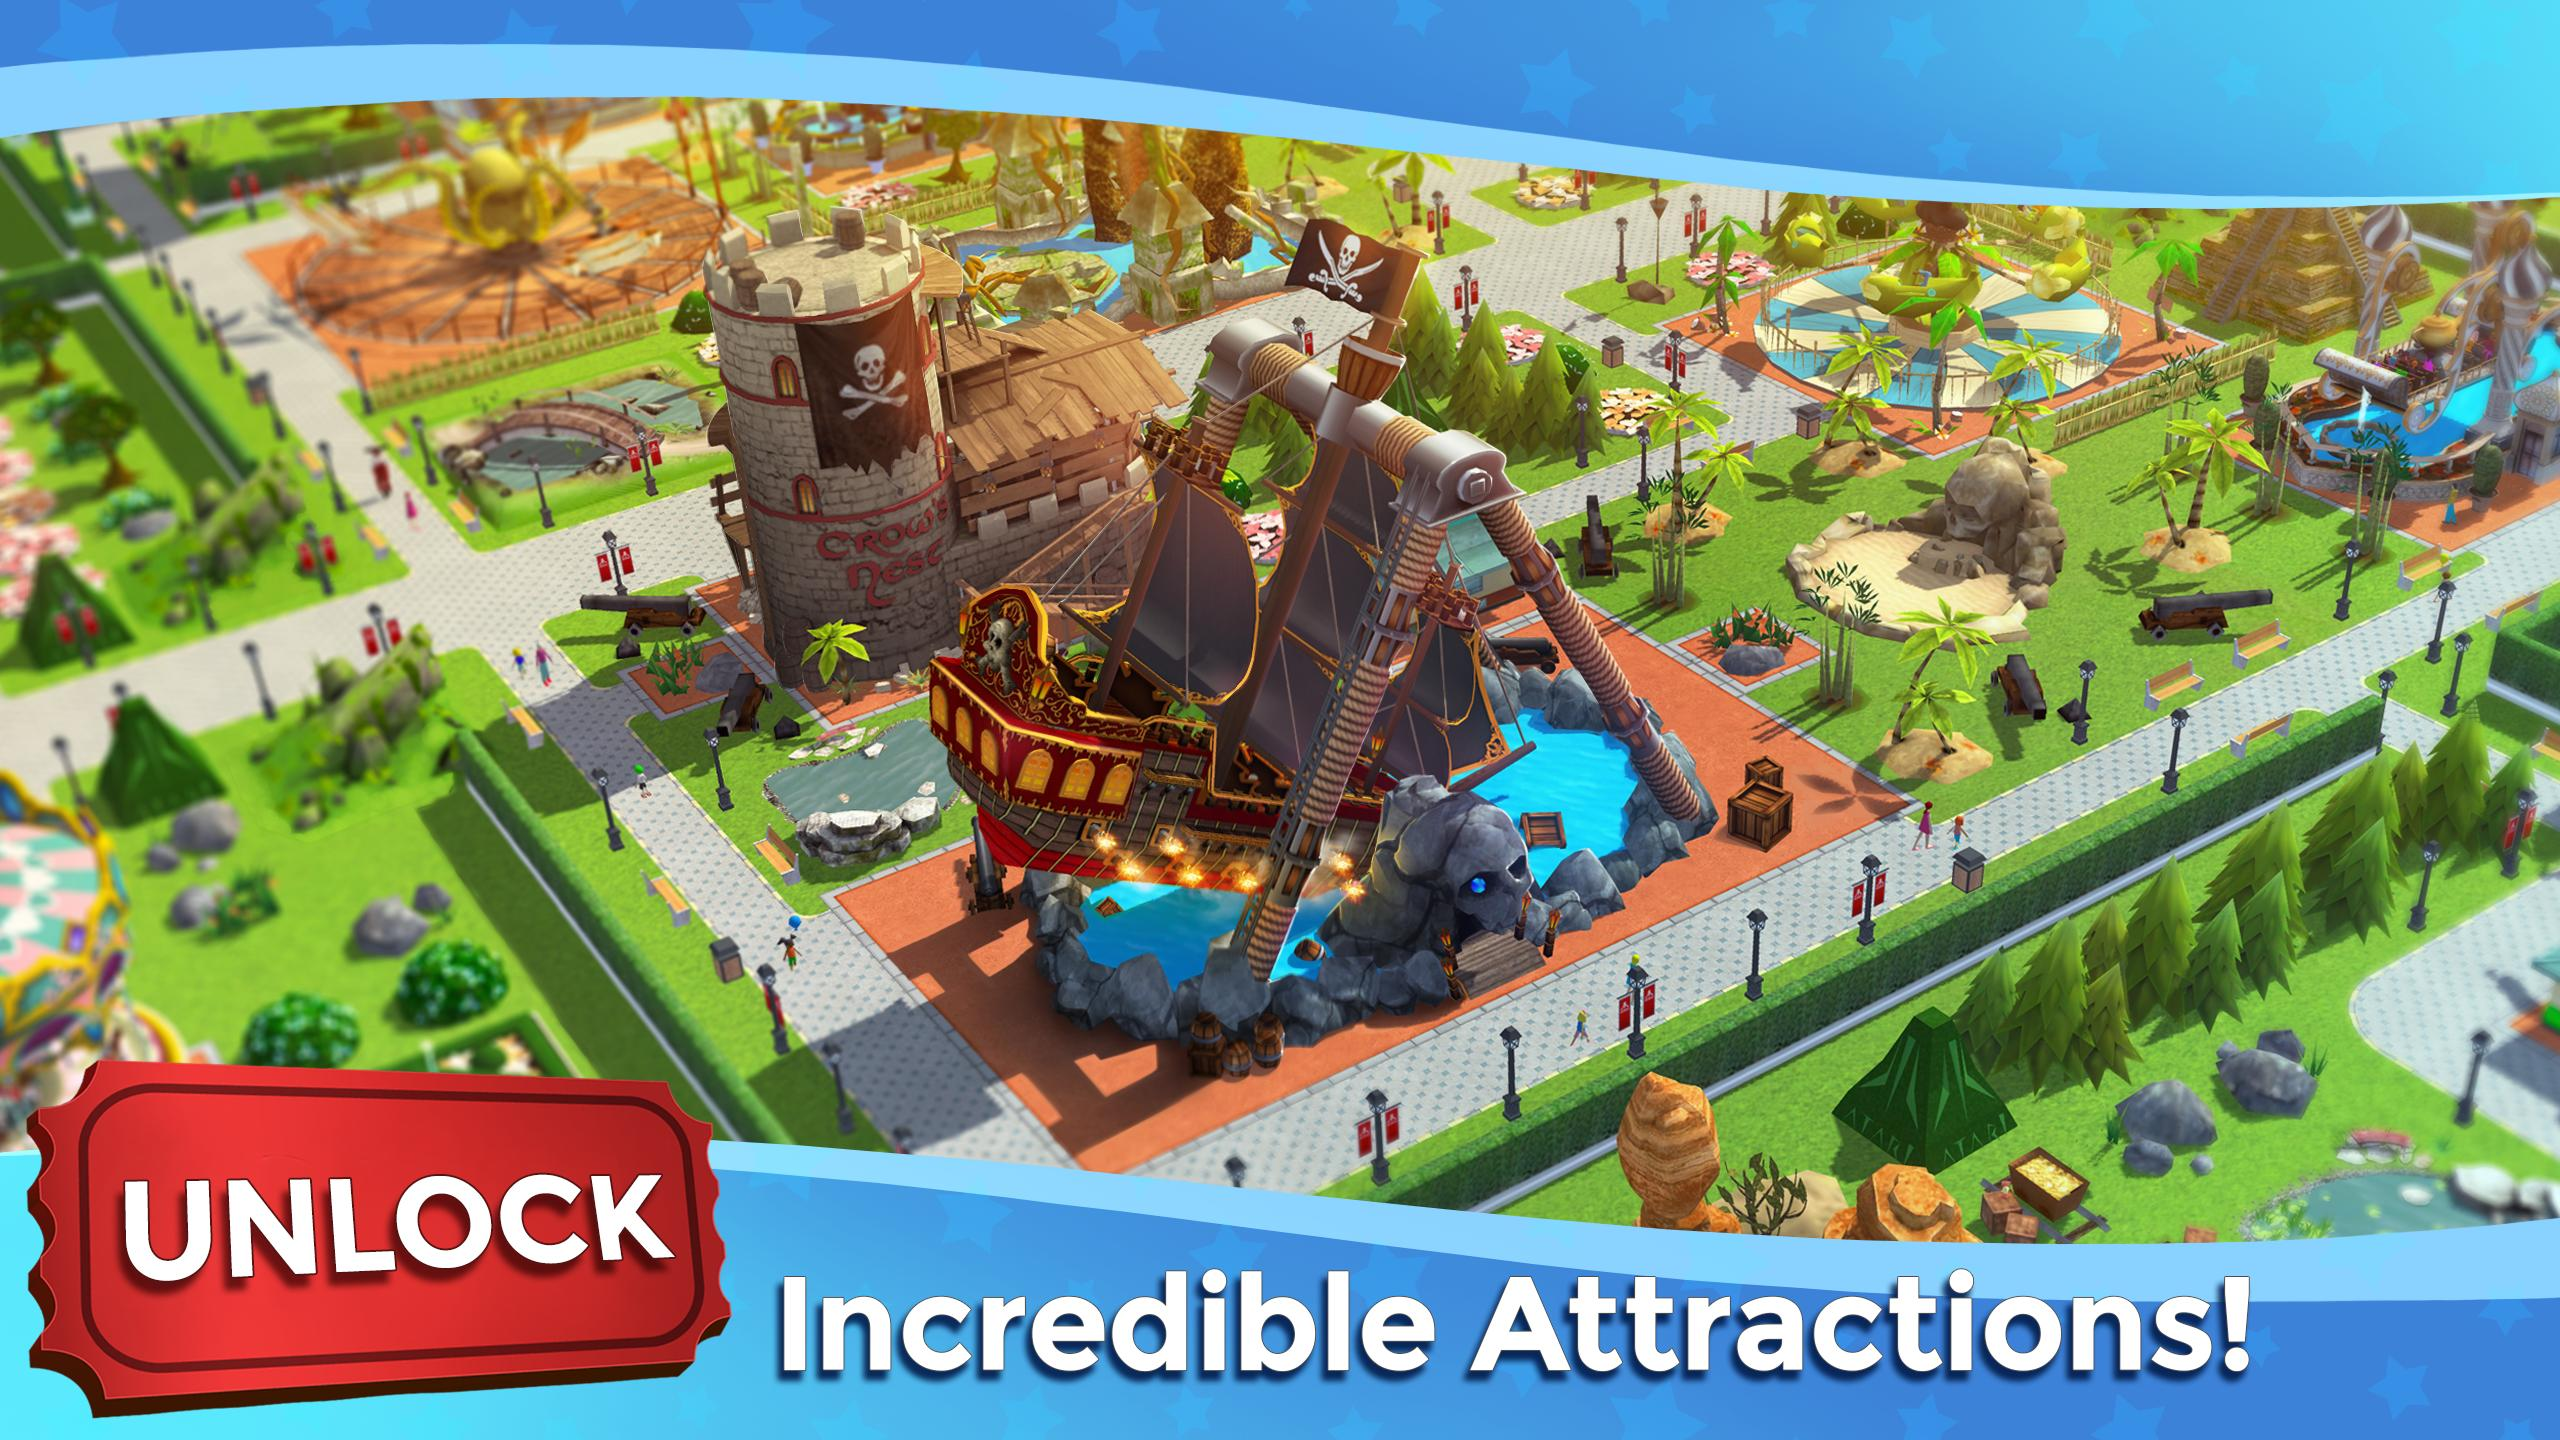 RollerCoaster Tycoon Touch - Build your Theme Park 3.5.0 Screenshot 11